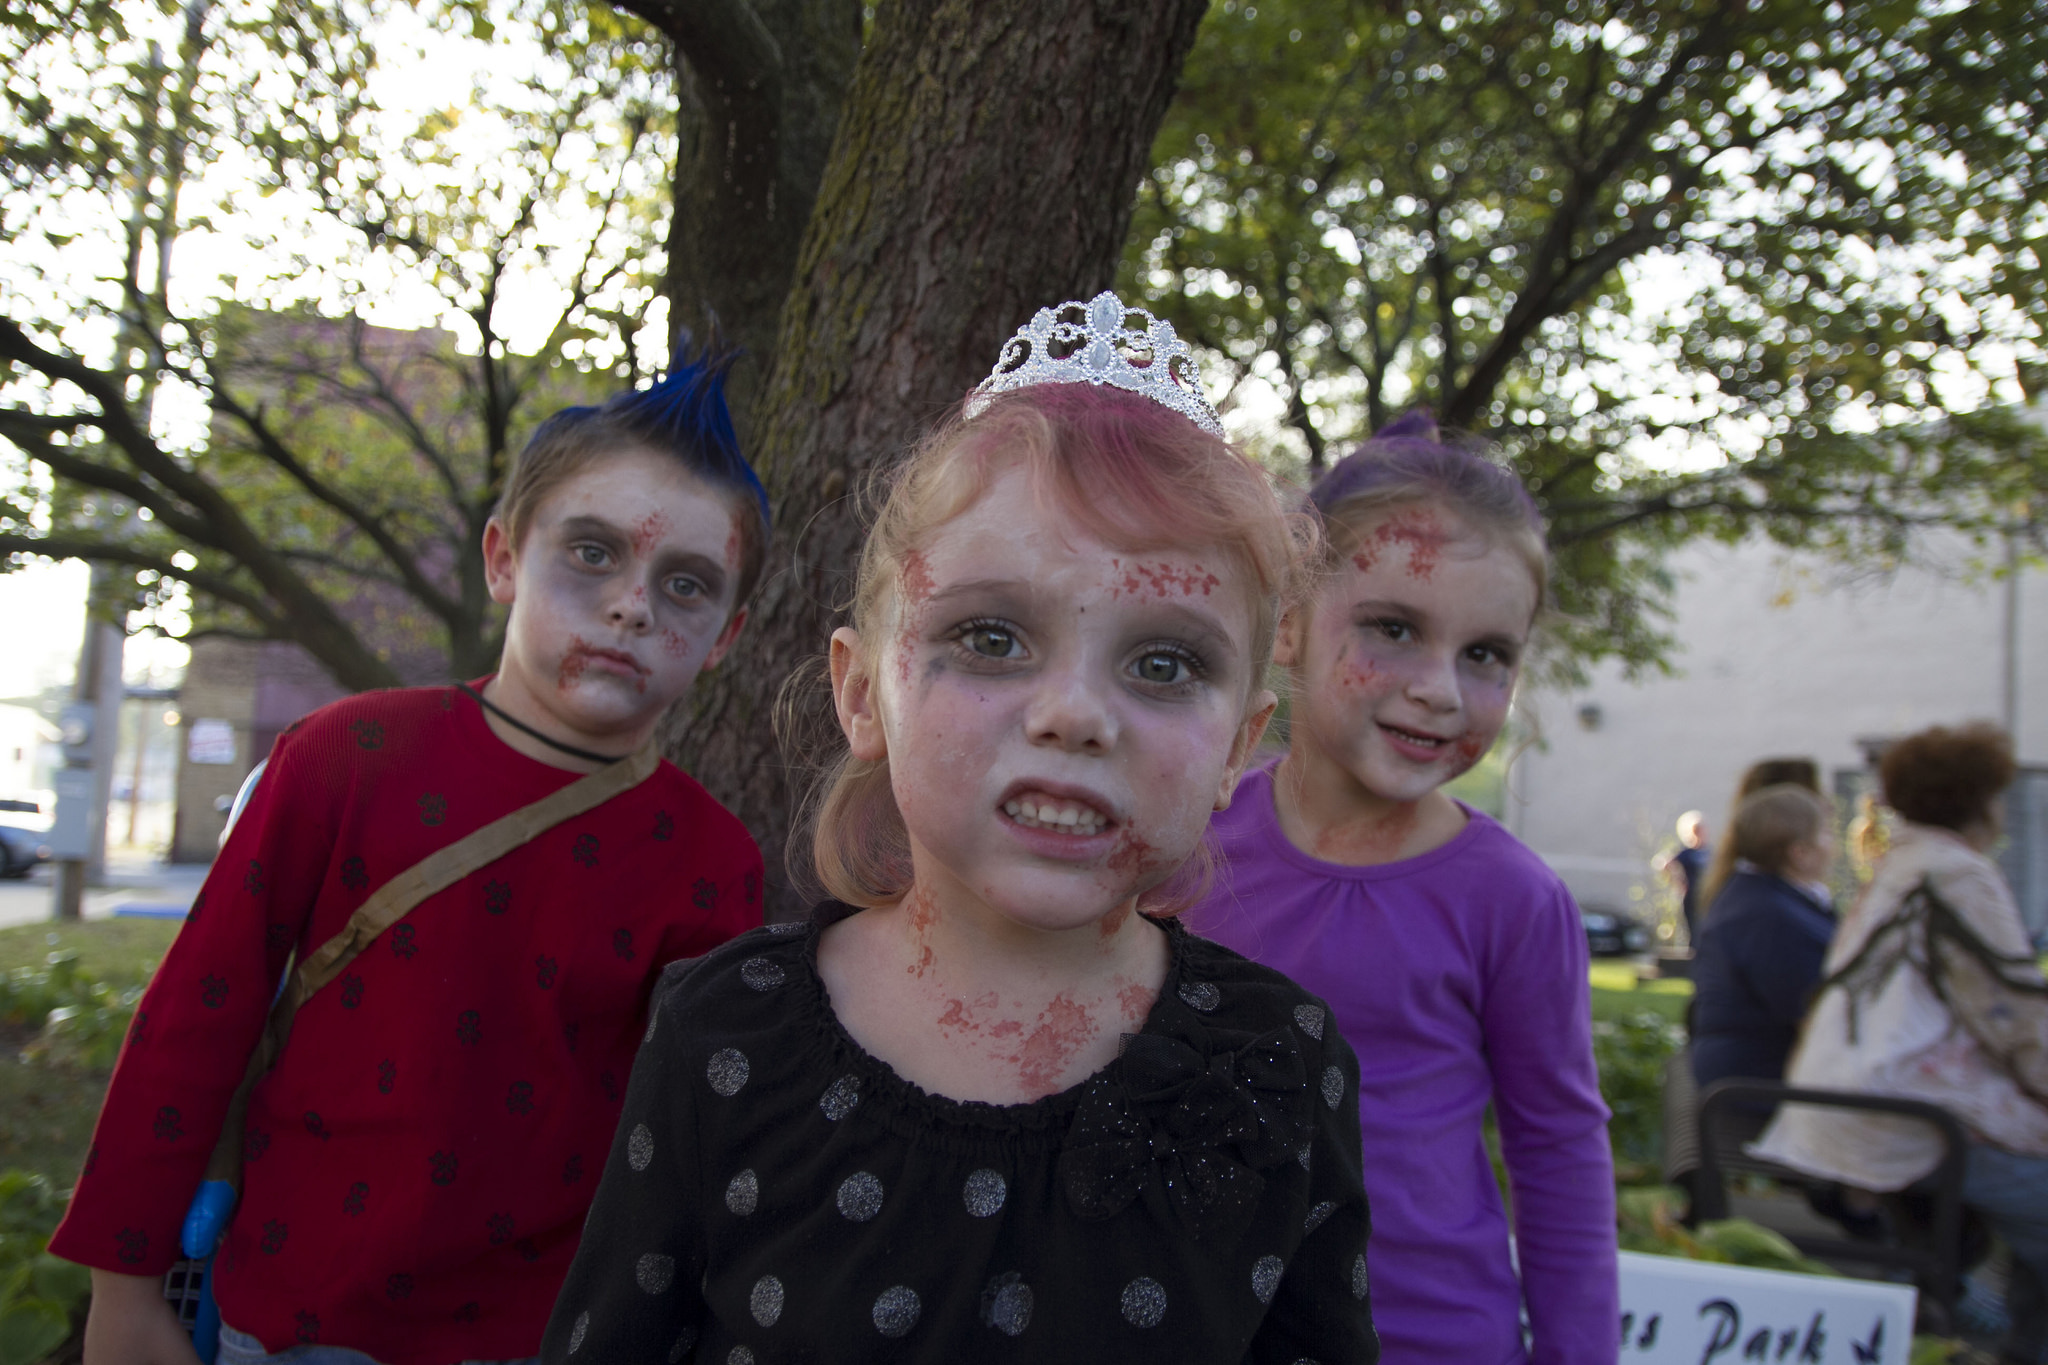 Three children dressed as zombies